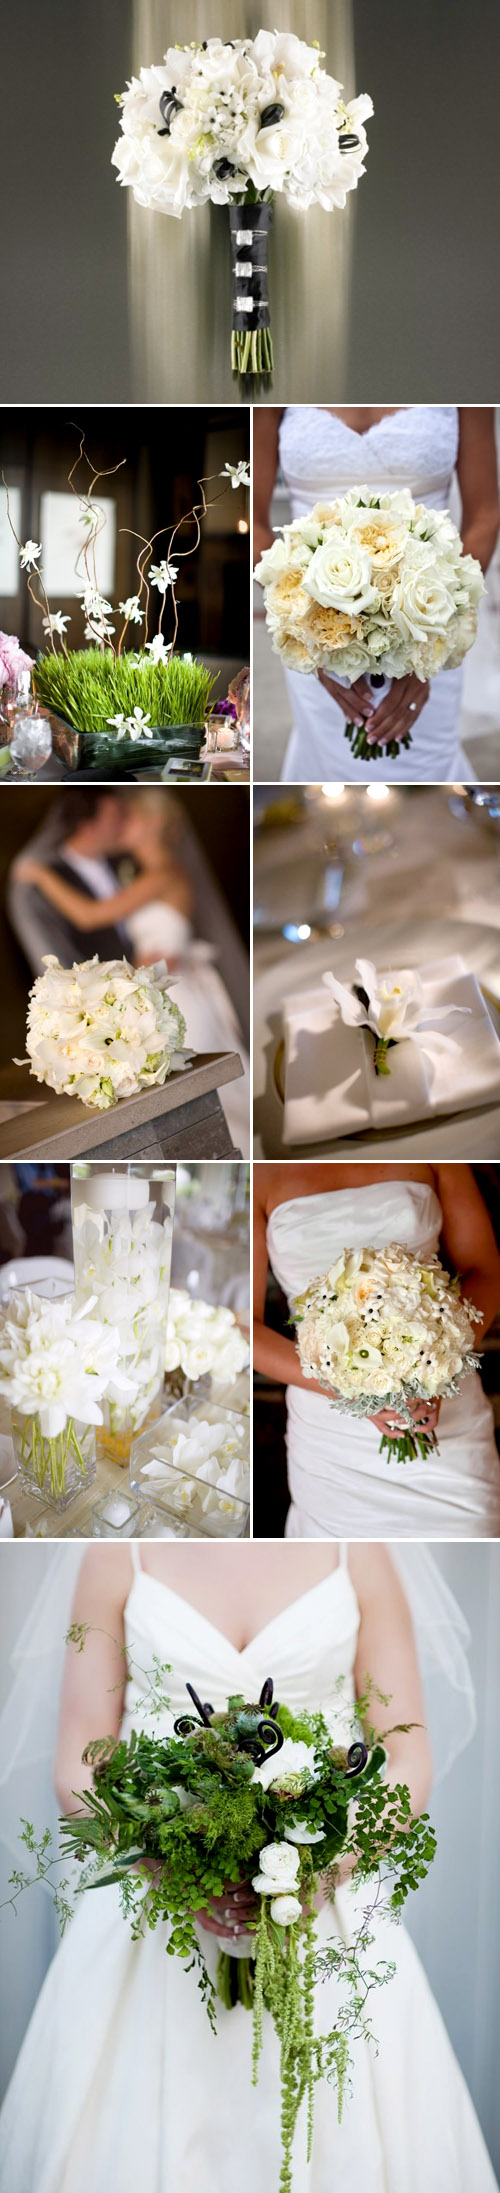 white wedding floral bouquets, centerpieces and decor by Flora Nova Floral and Event Design, images via the Flora Nova website and blog